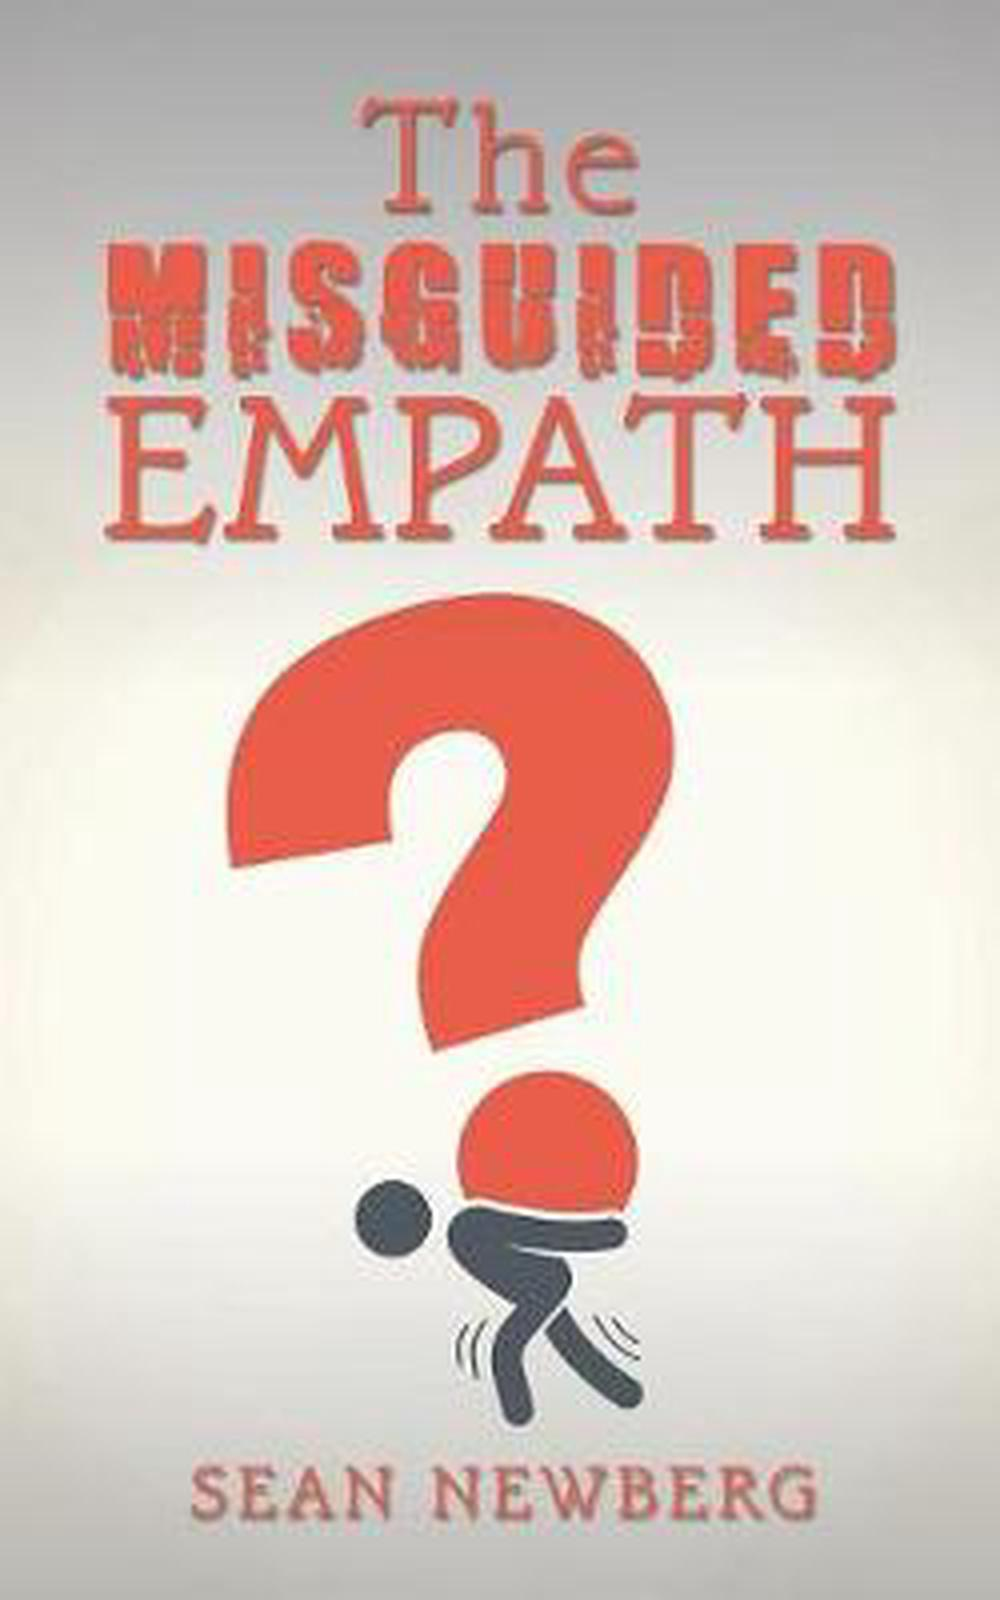 Details about Misguided Empath by Sean Newberg Paperback Book Free Shipping!